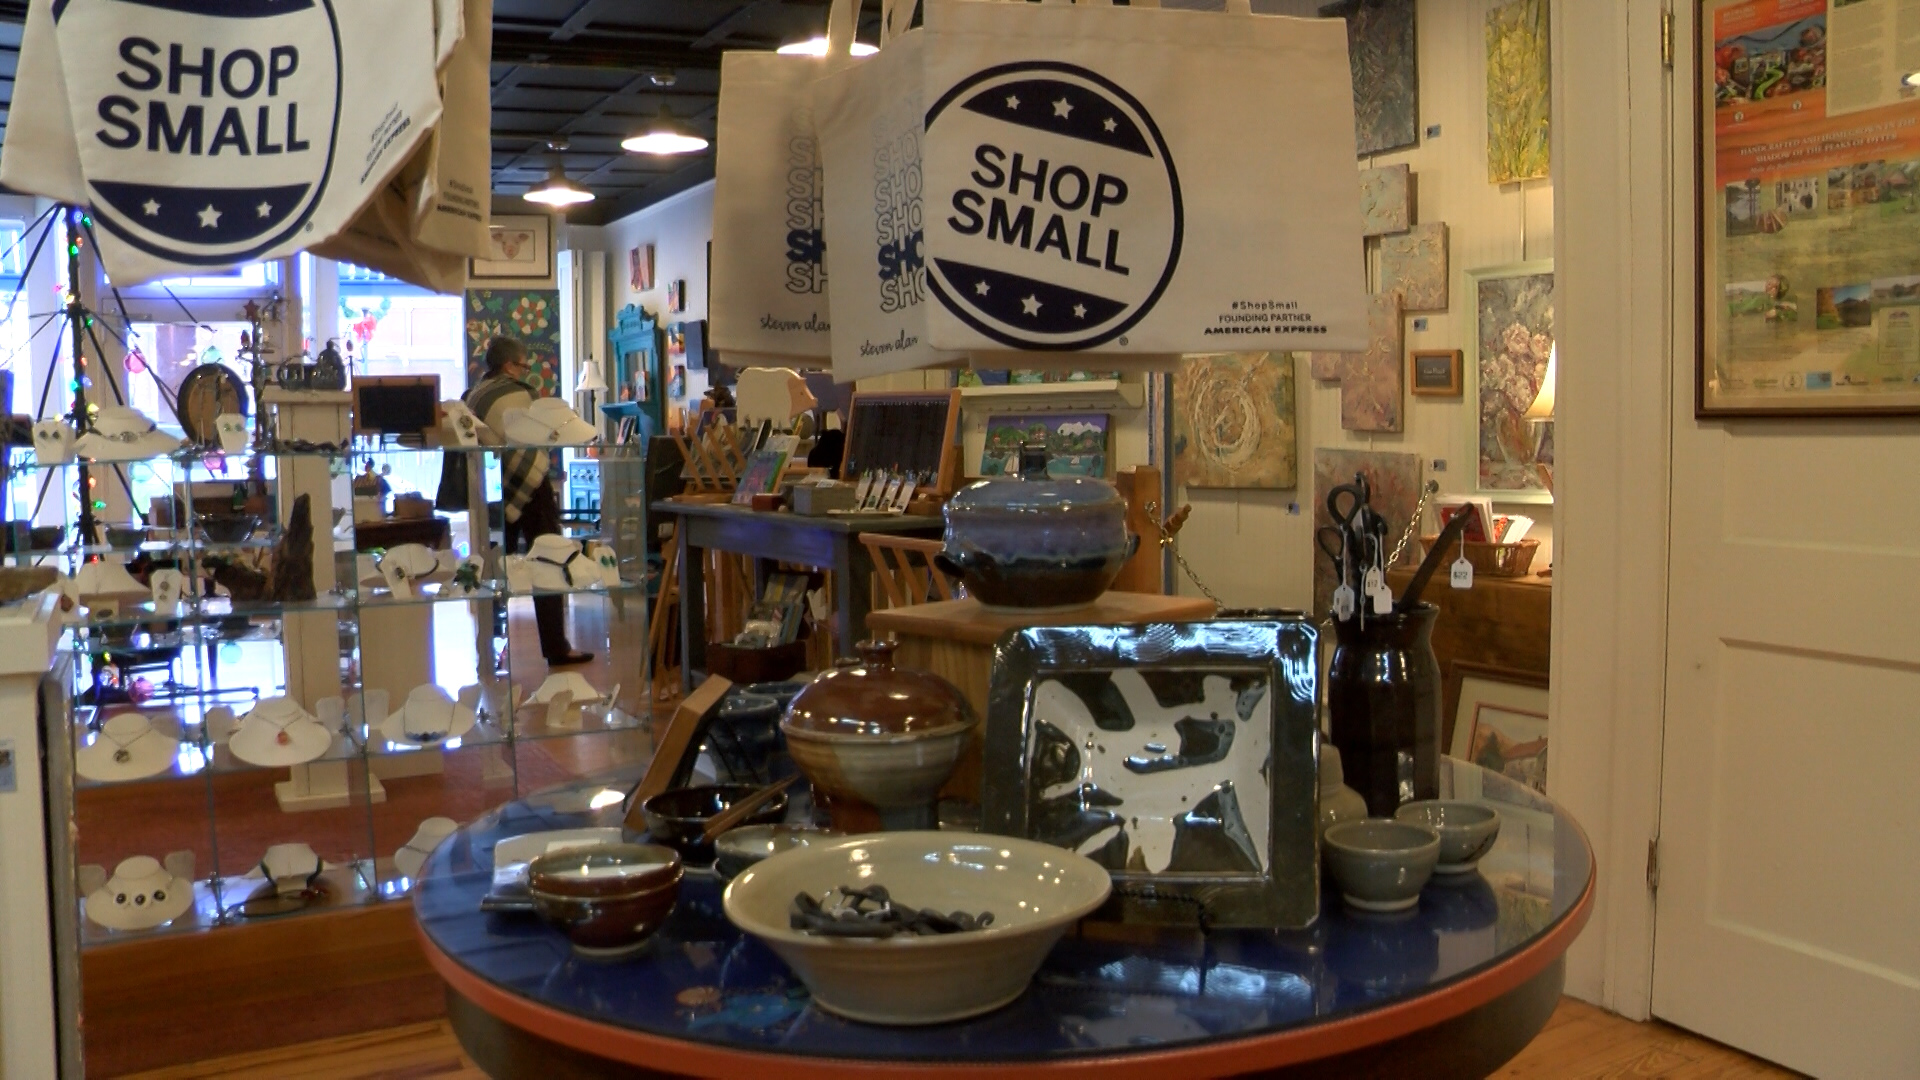 small business saturday bedford_1448773049736.jpg